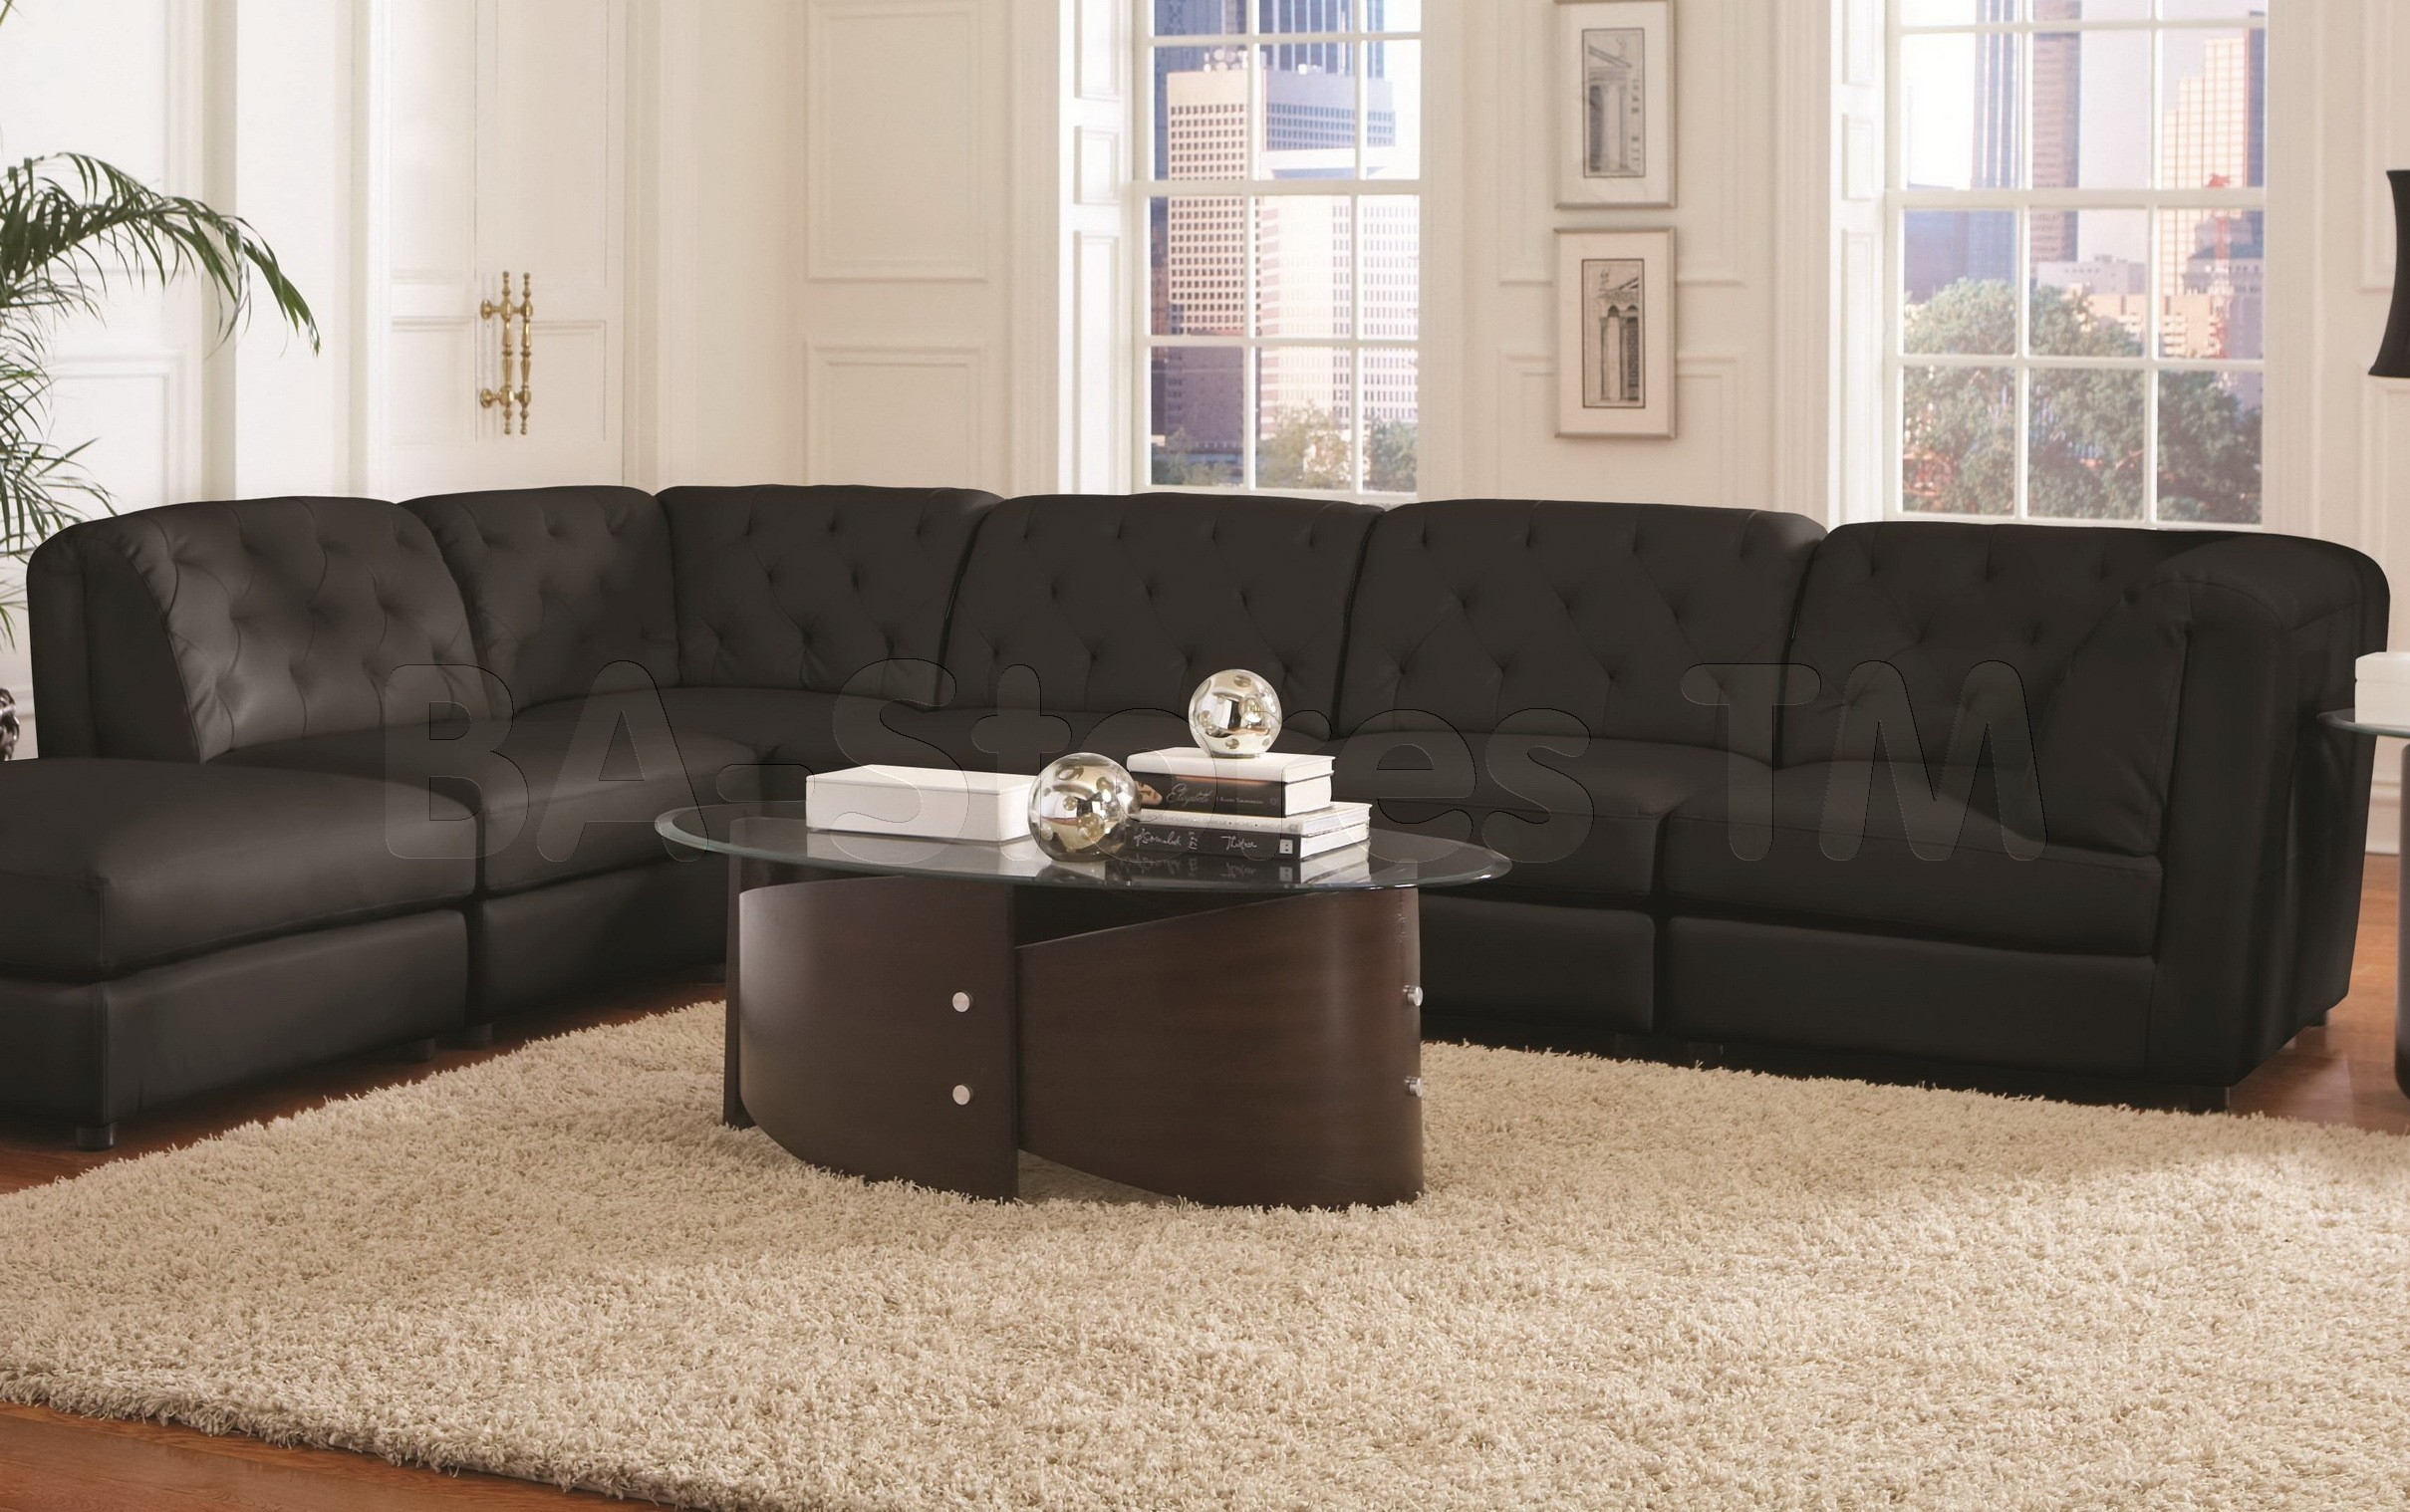 Black Sectional sofa for Cheap Fresh sofa Design Ideas Black Sectional sofa for Cheap Black Sectional Layout